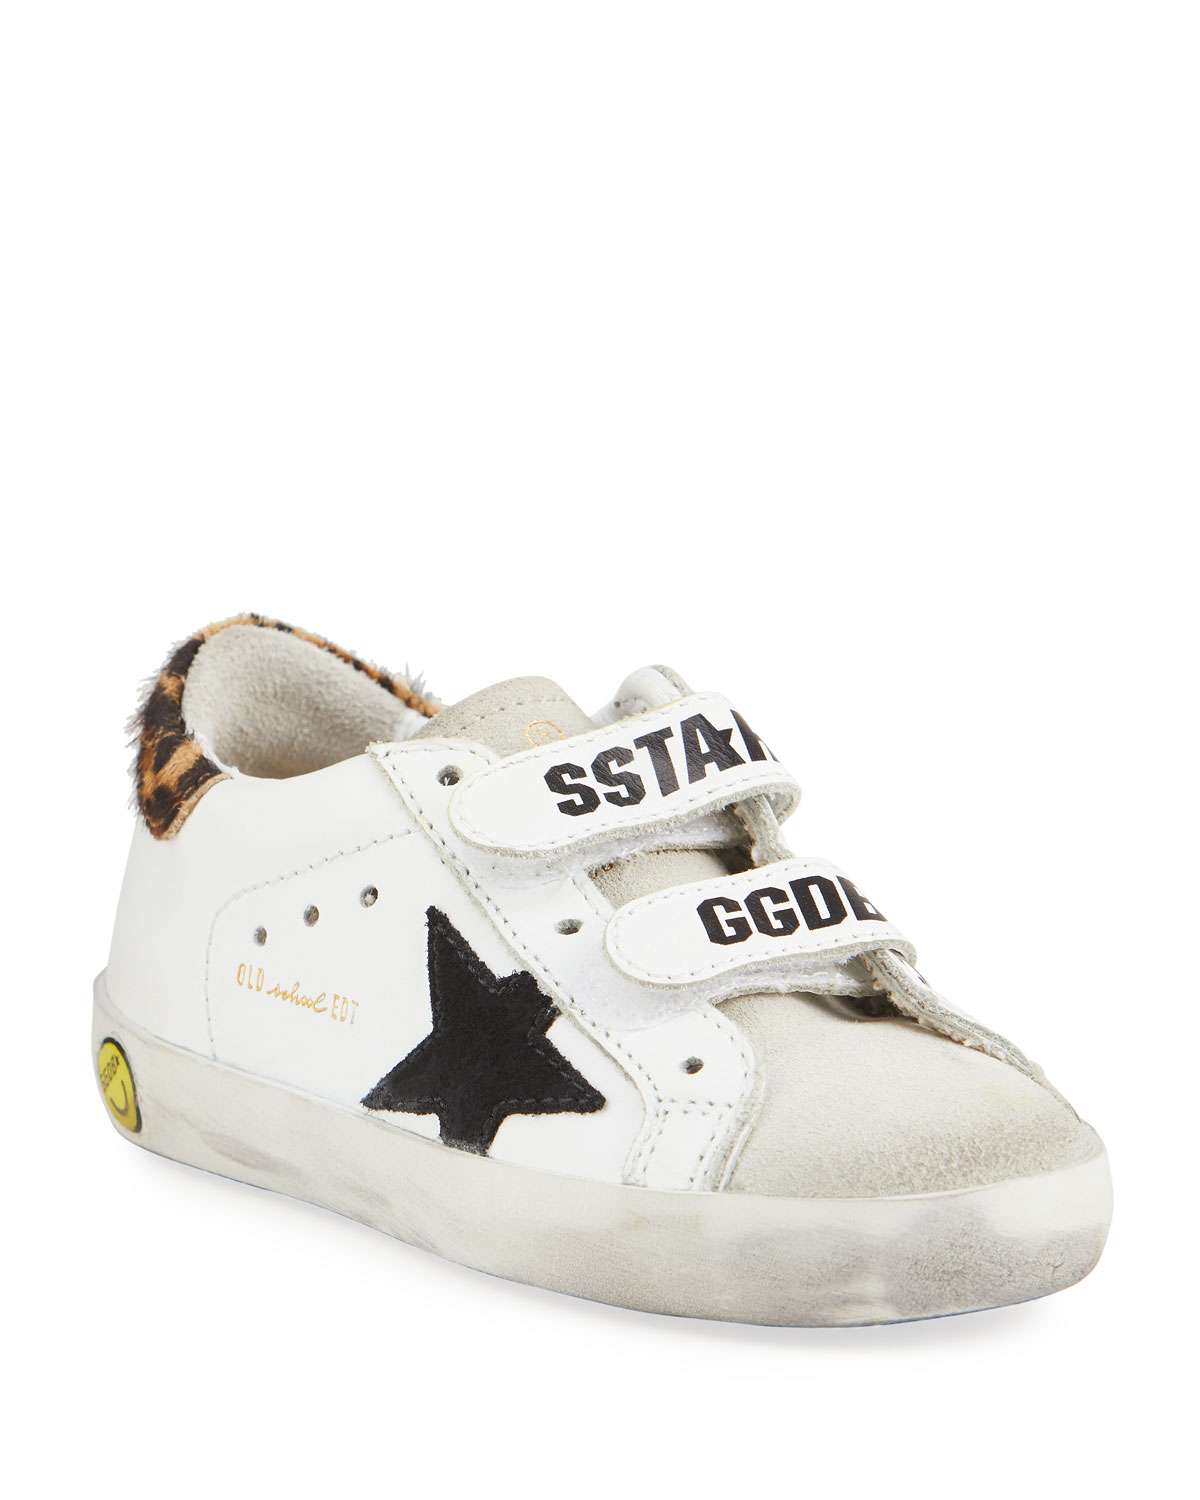 Golden Goose Girl's Old School Leather Sneakers, Baby/Toddler